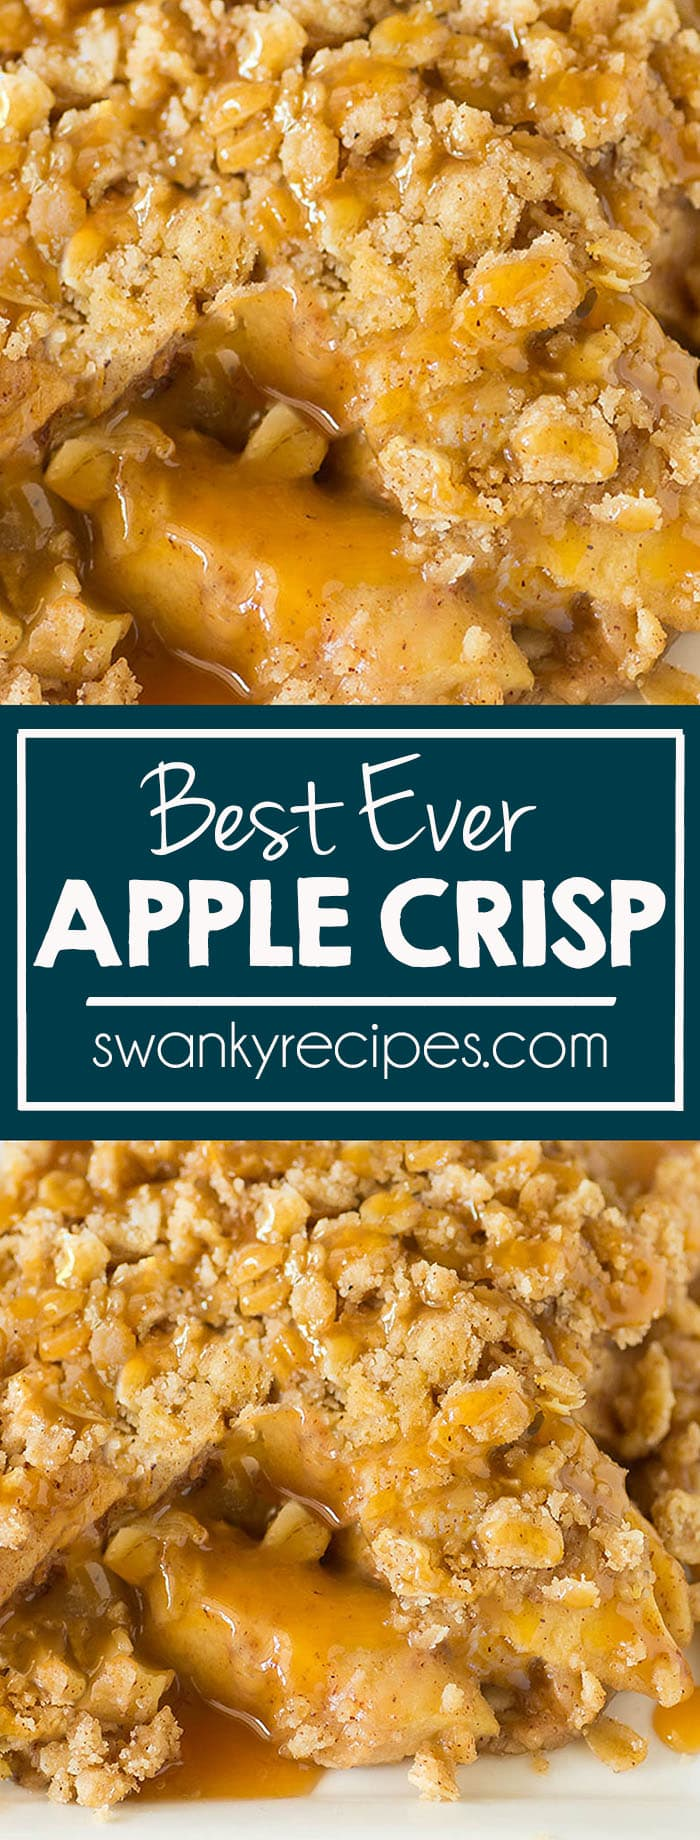 Best Ever Caramel Apple Crisp! Fresh apples baked in the BEST apple crisp topping! The best apple dessert this fall!